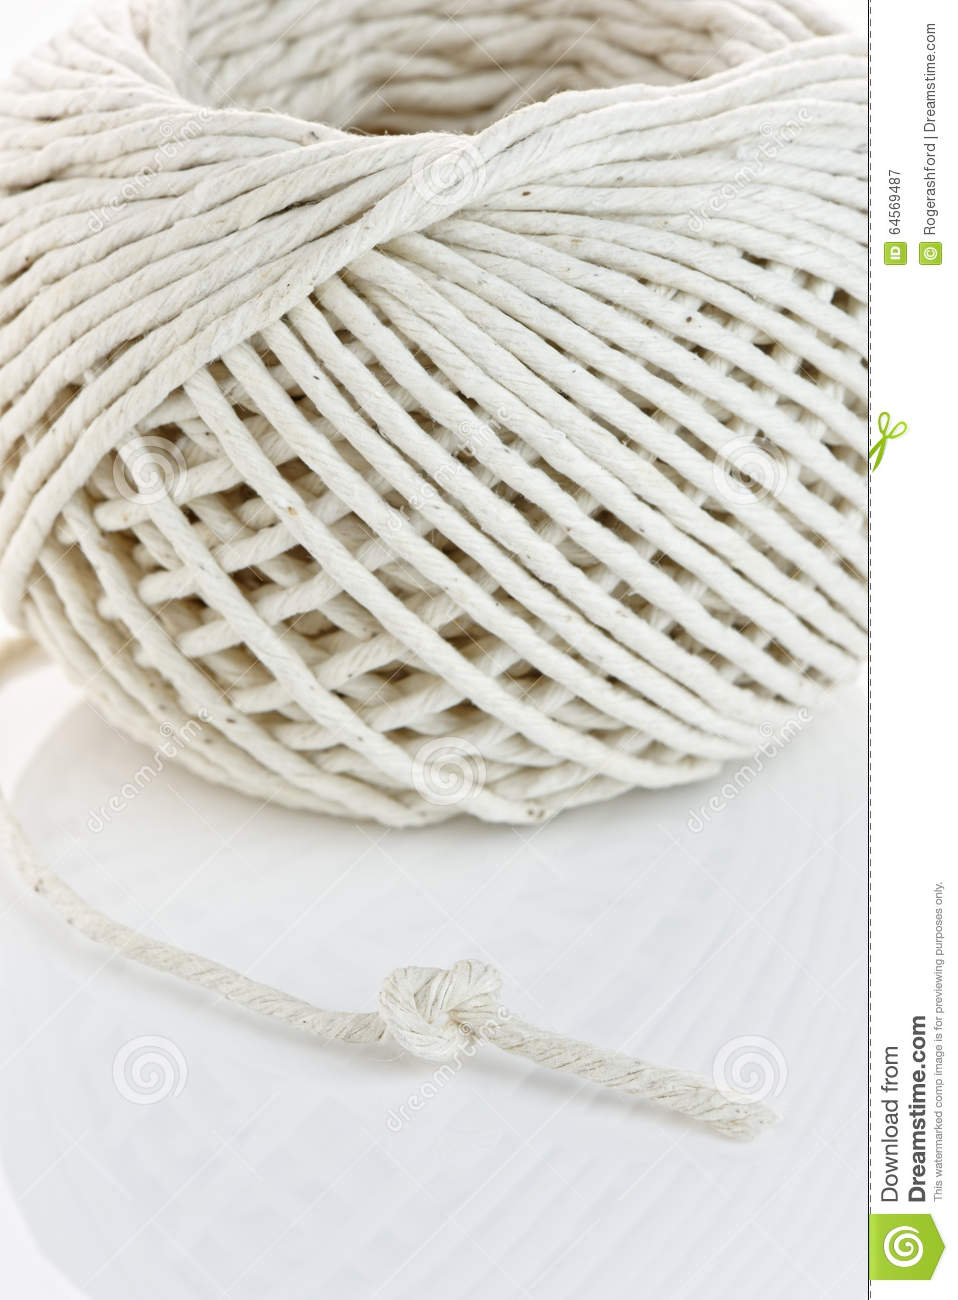 how to knot end of string